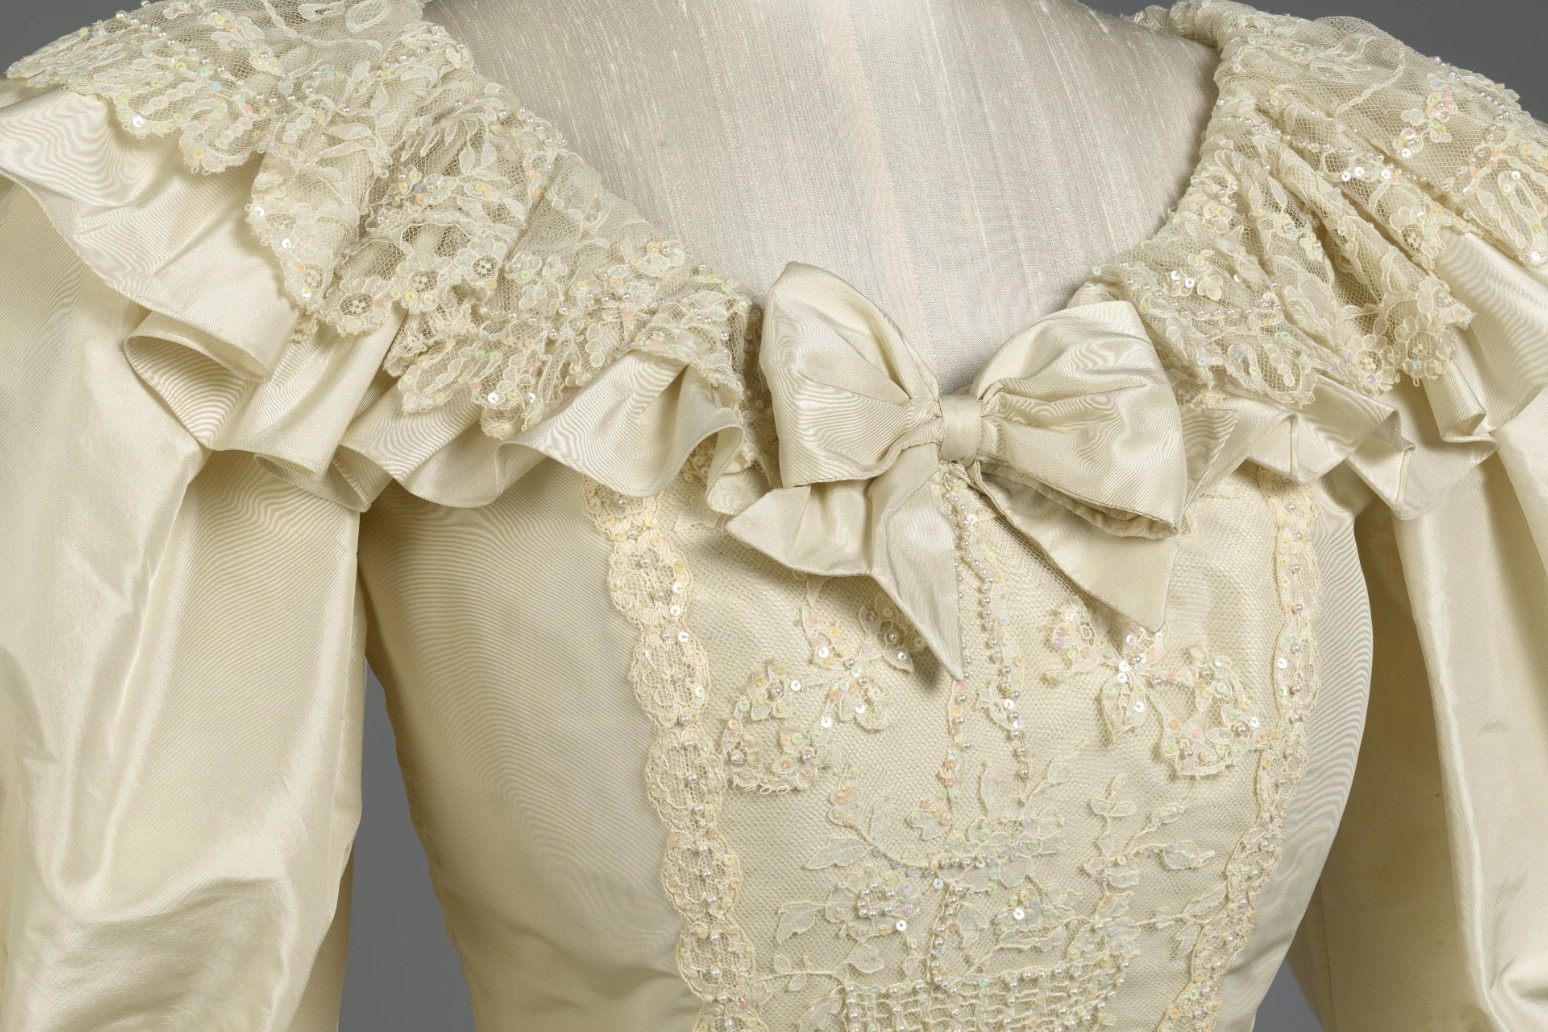 Diana's wedding dress goes on display in new exhibition